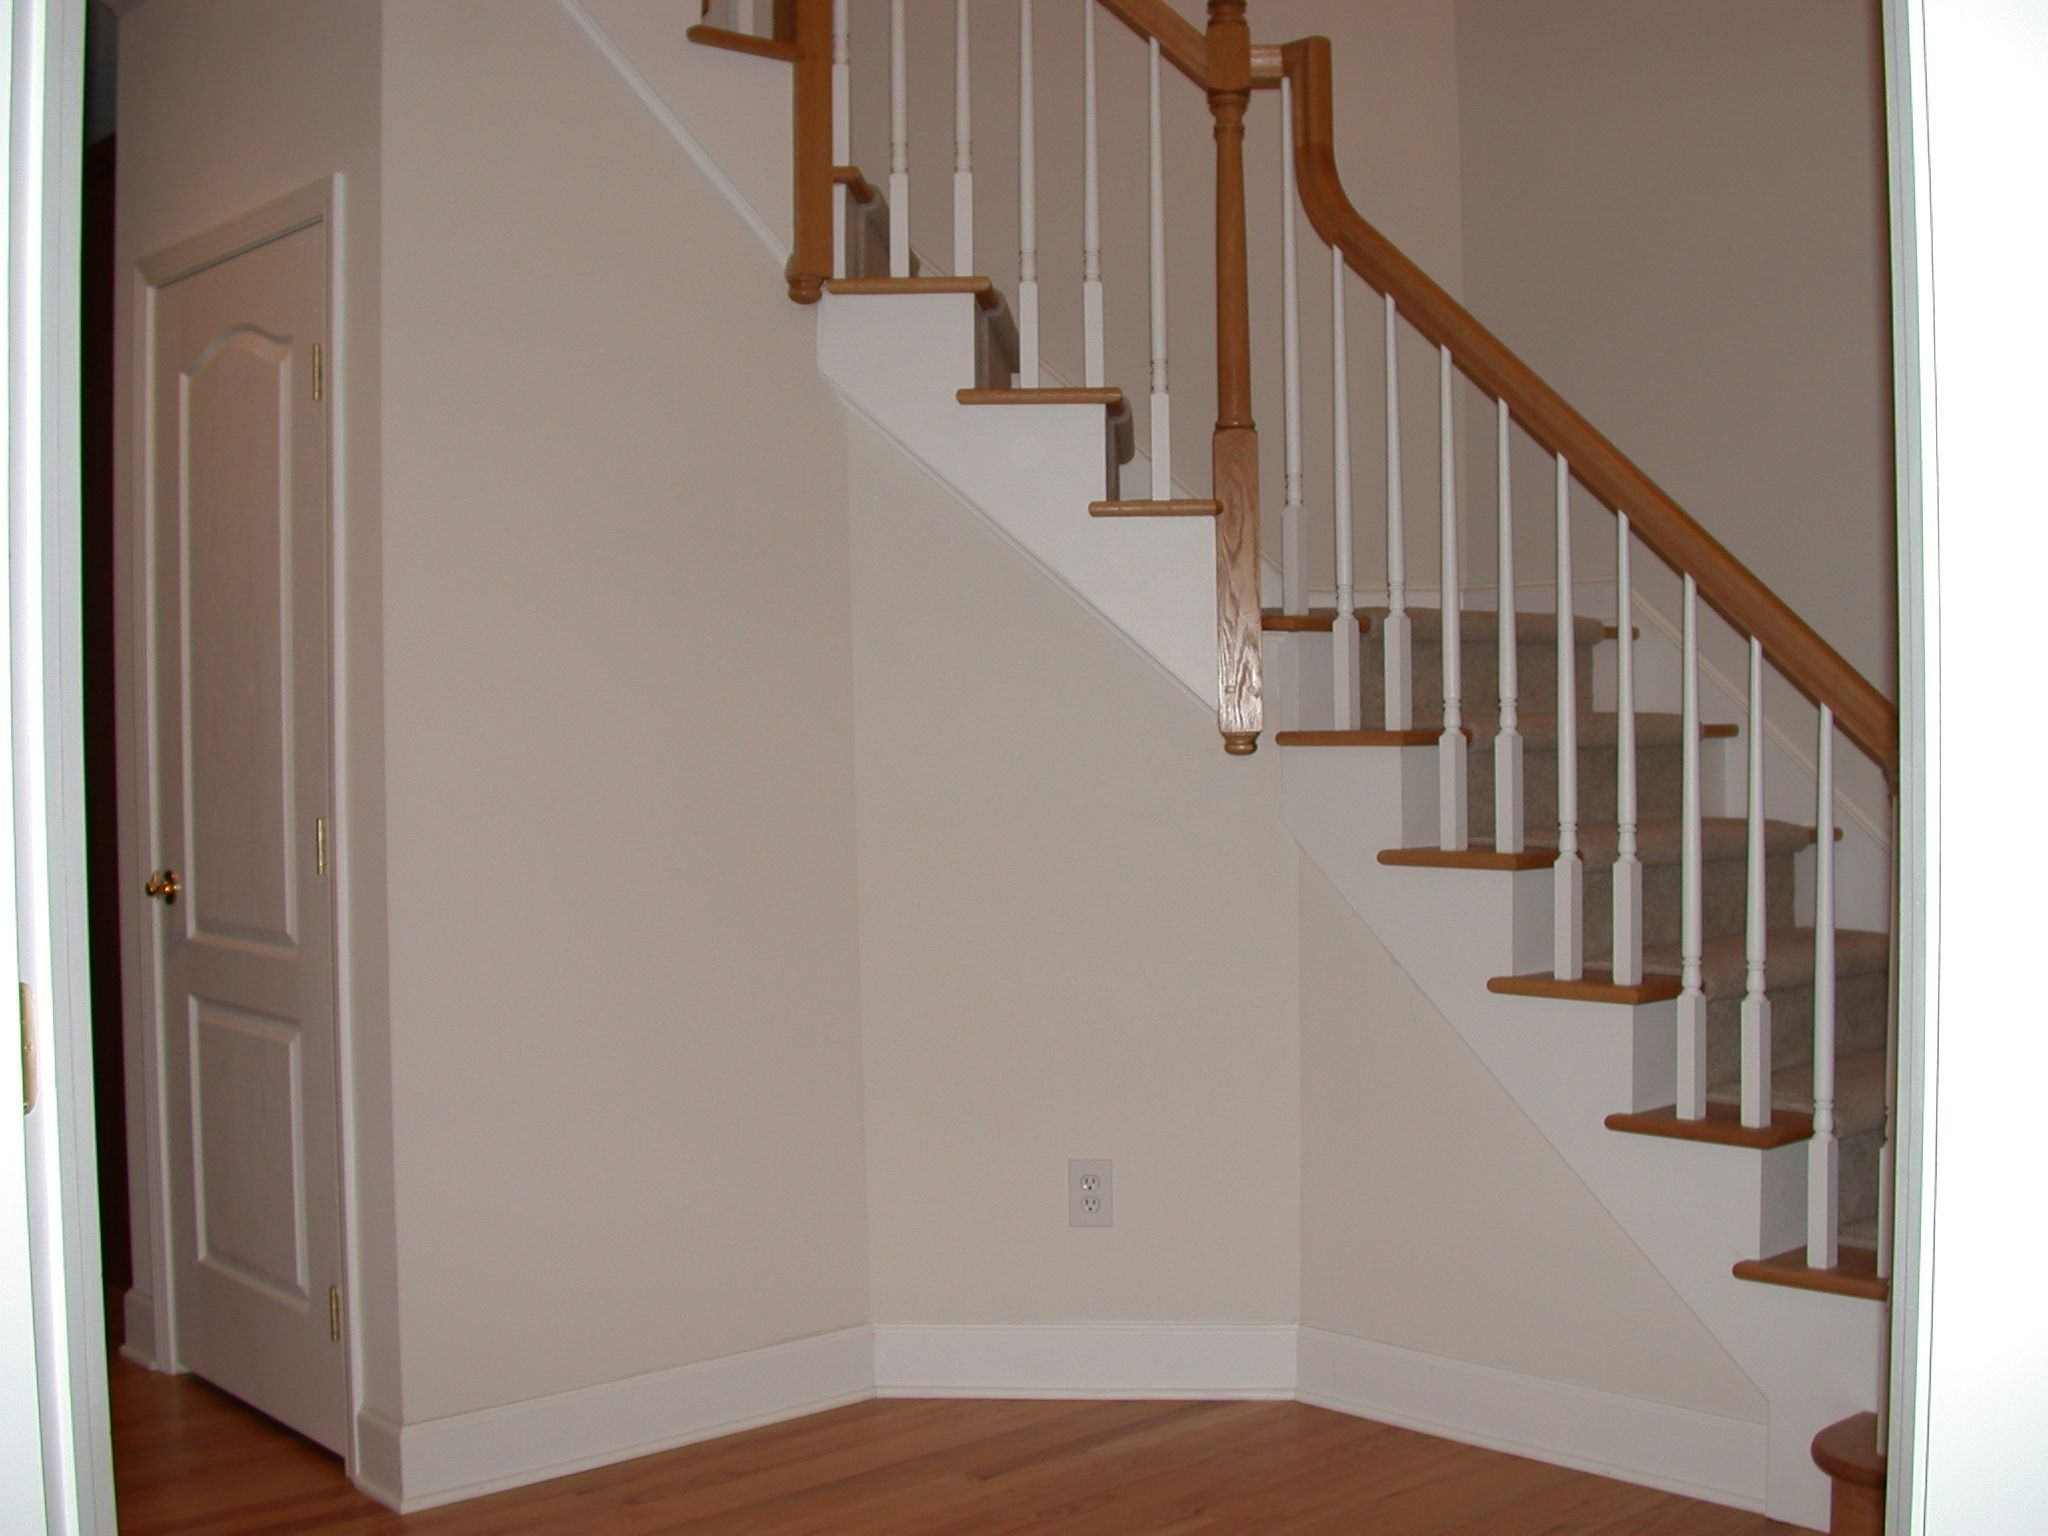 Stair Molding | Side Of Stairs Before Trim